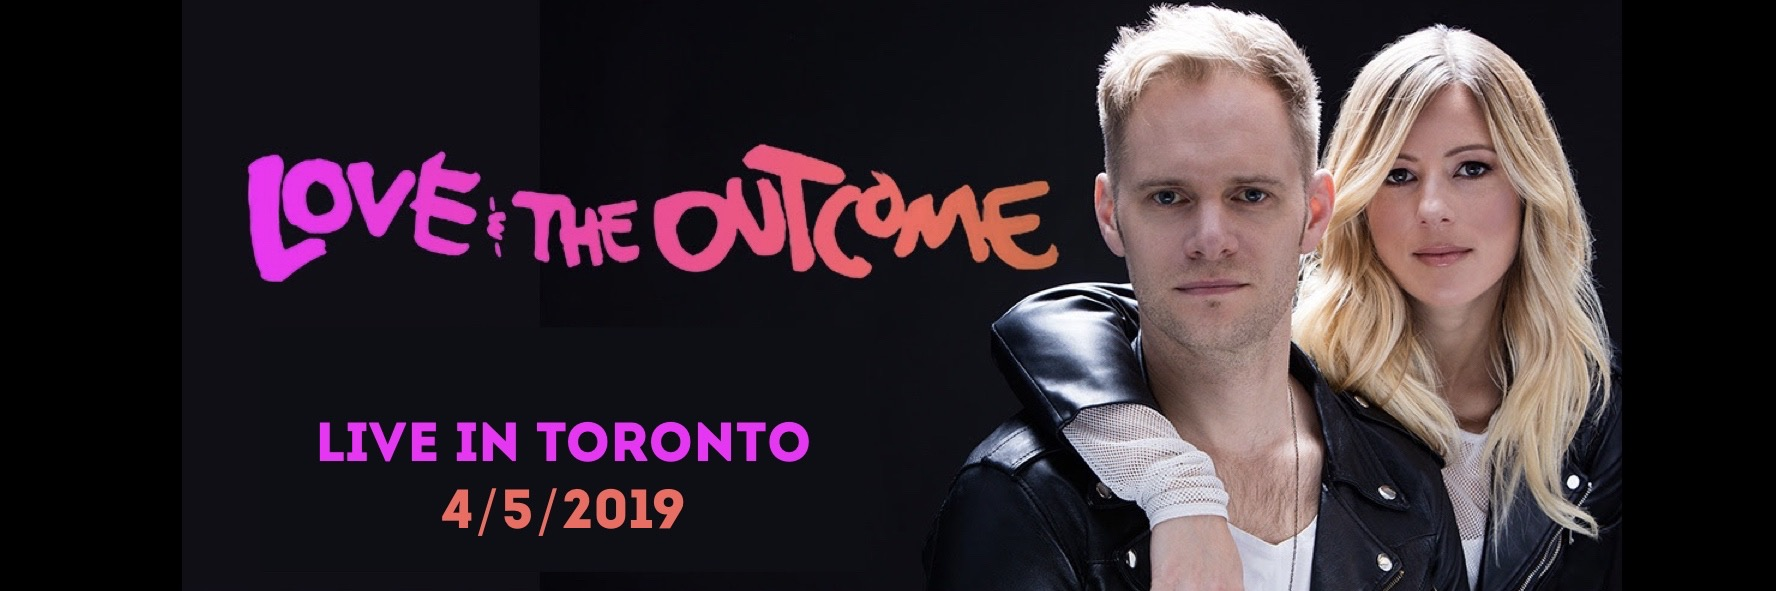 Tickets for LOVE & THE OUTCOME in Toronto from BuzzTix